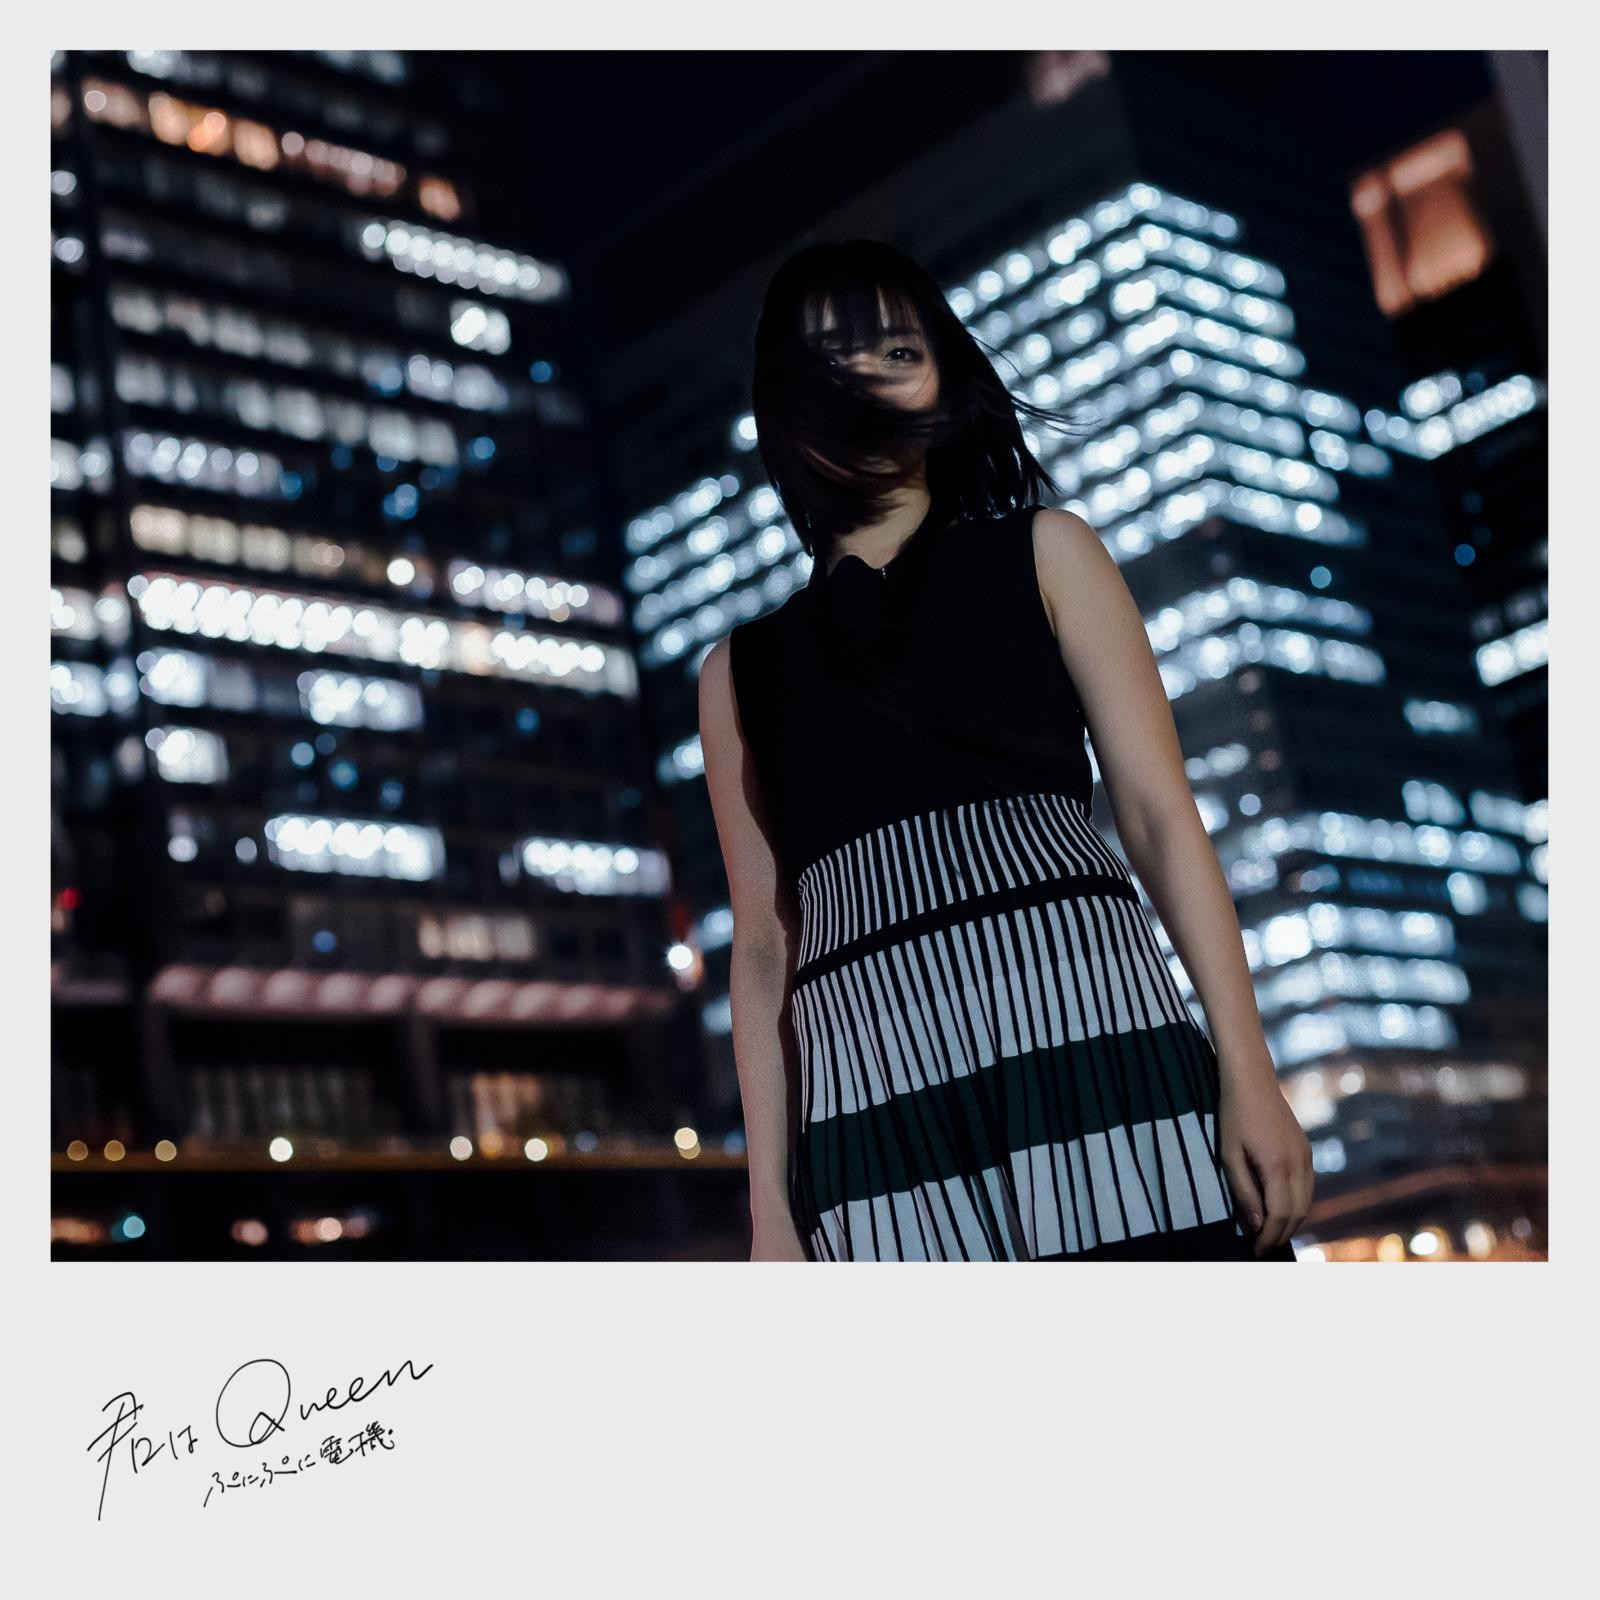 ぷにぷに電機  (punipunidenki) – My Queen [FLAC + MP3 320 / WEB] [2019.06.05]